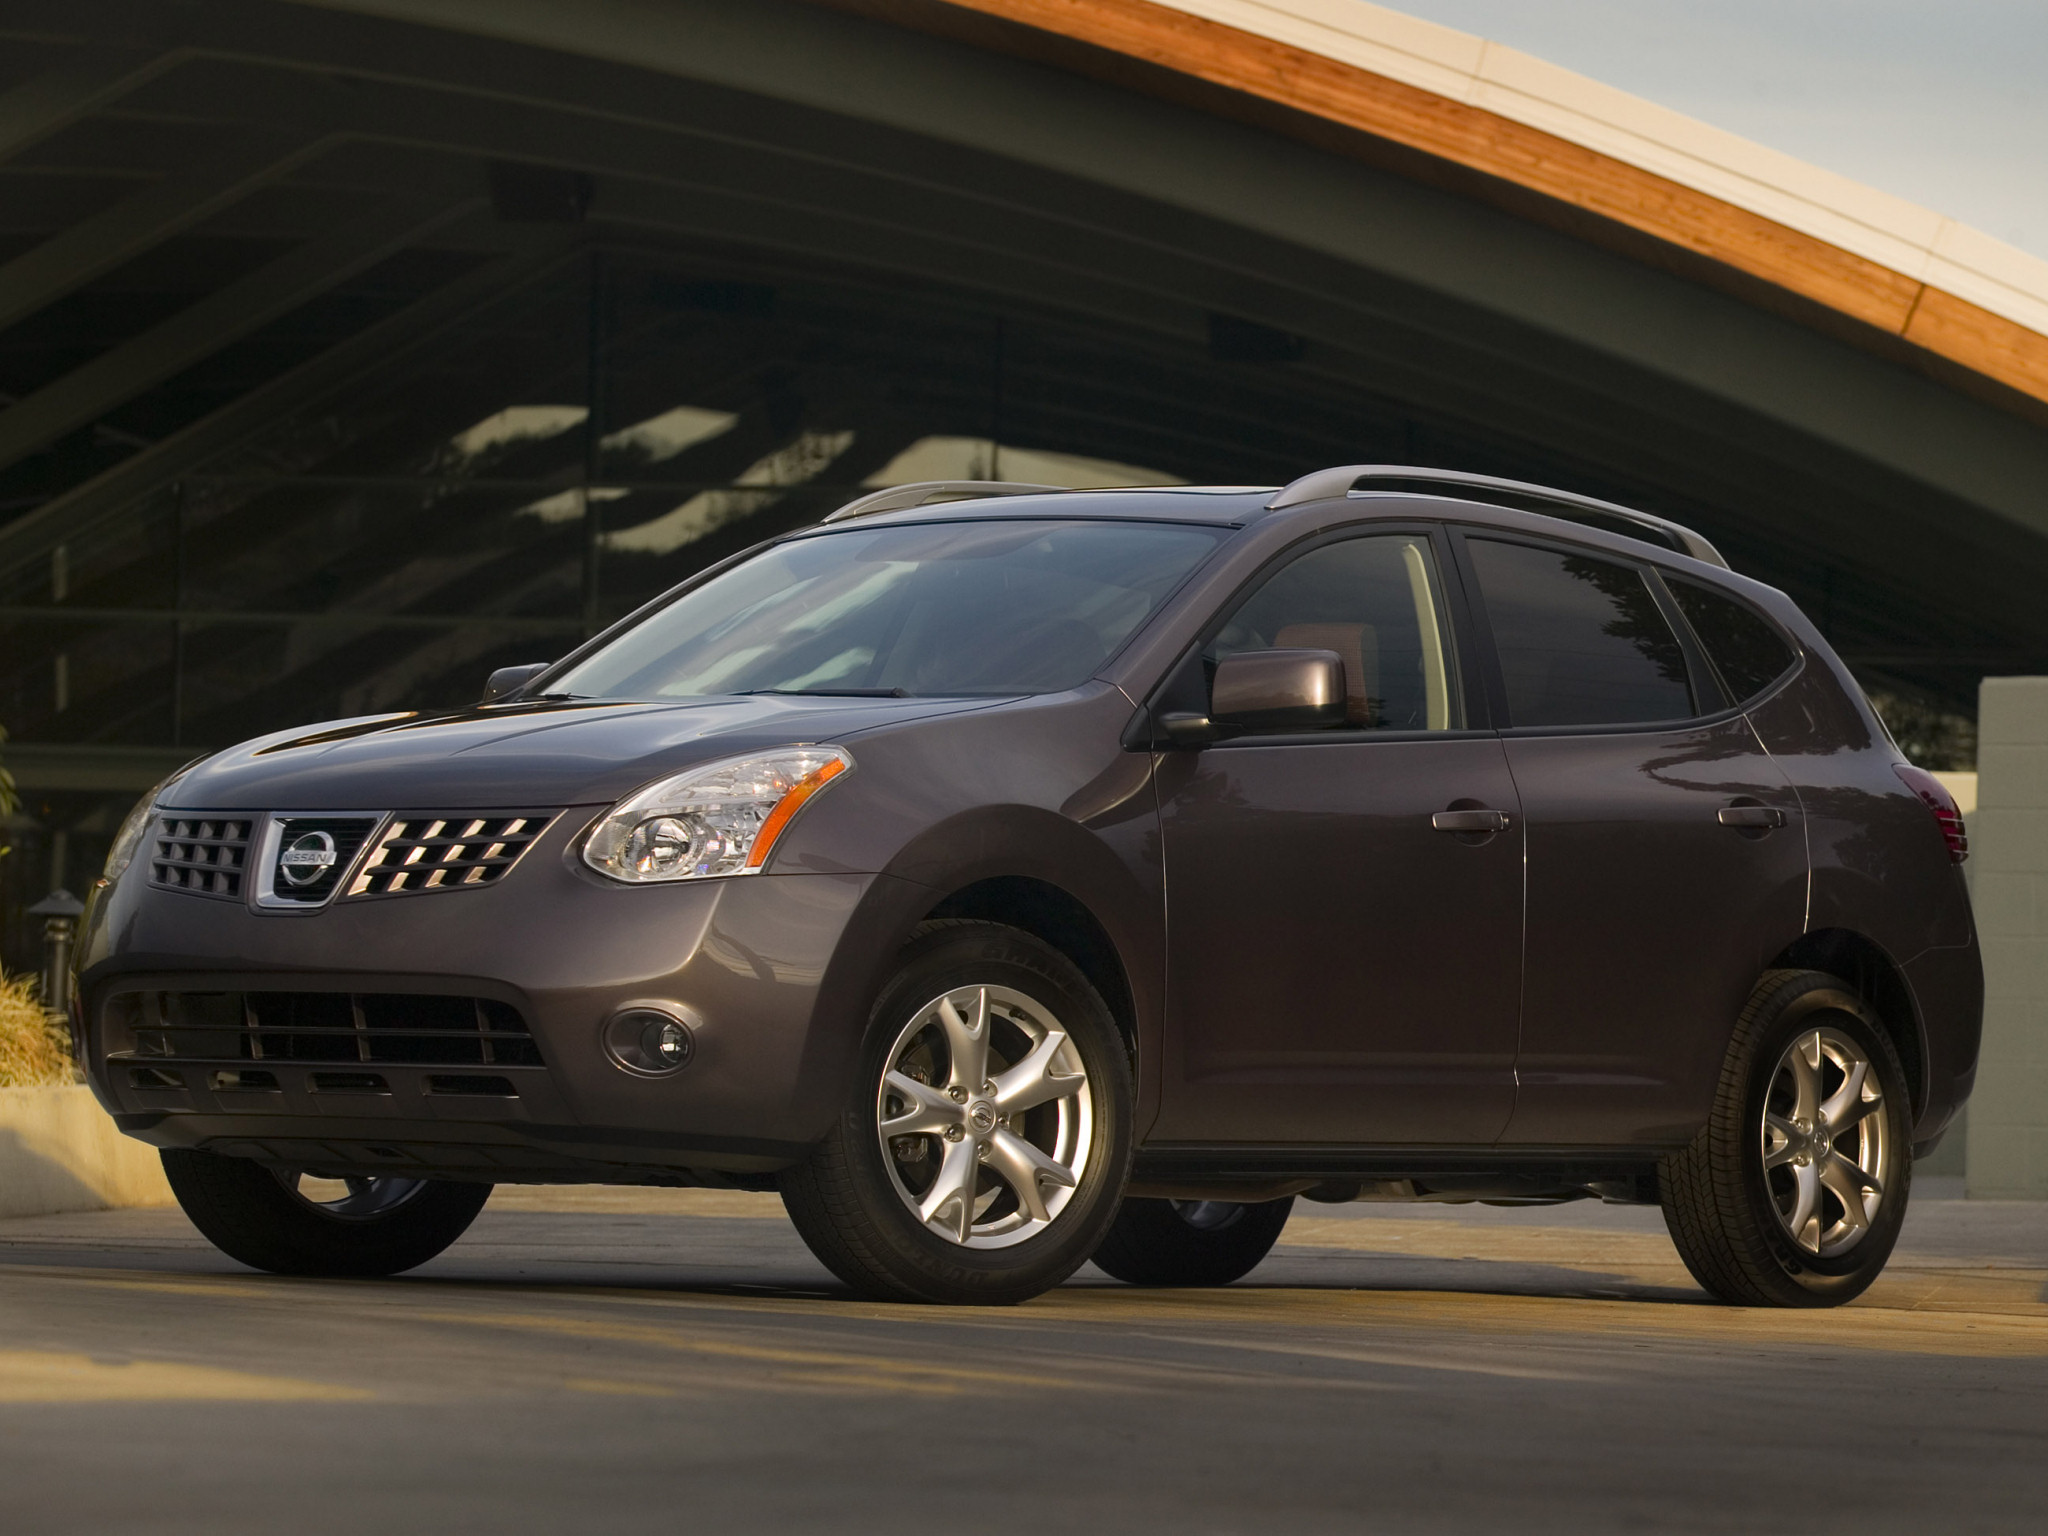 2007 Nissan Rogue - Picture 40620